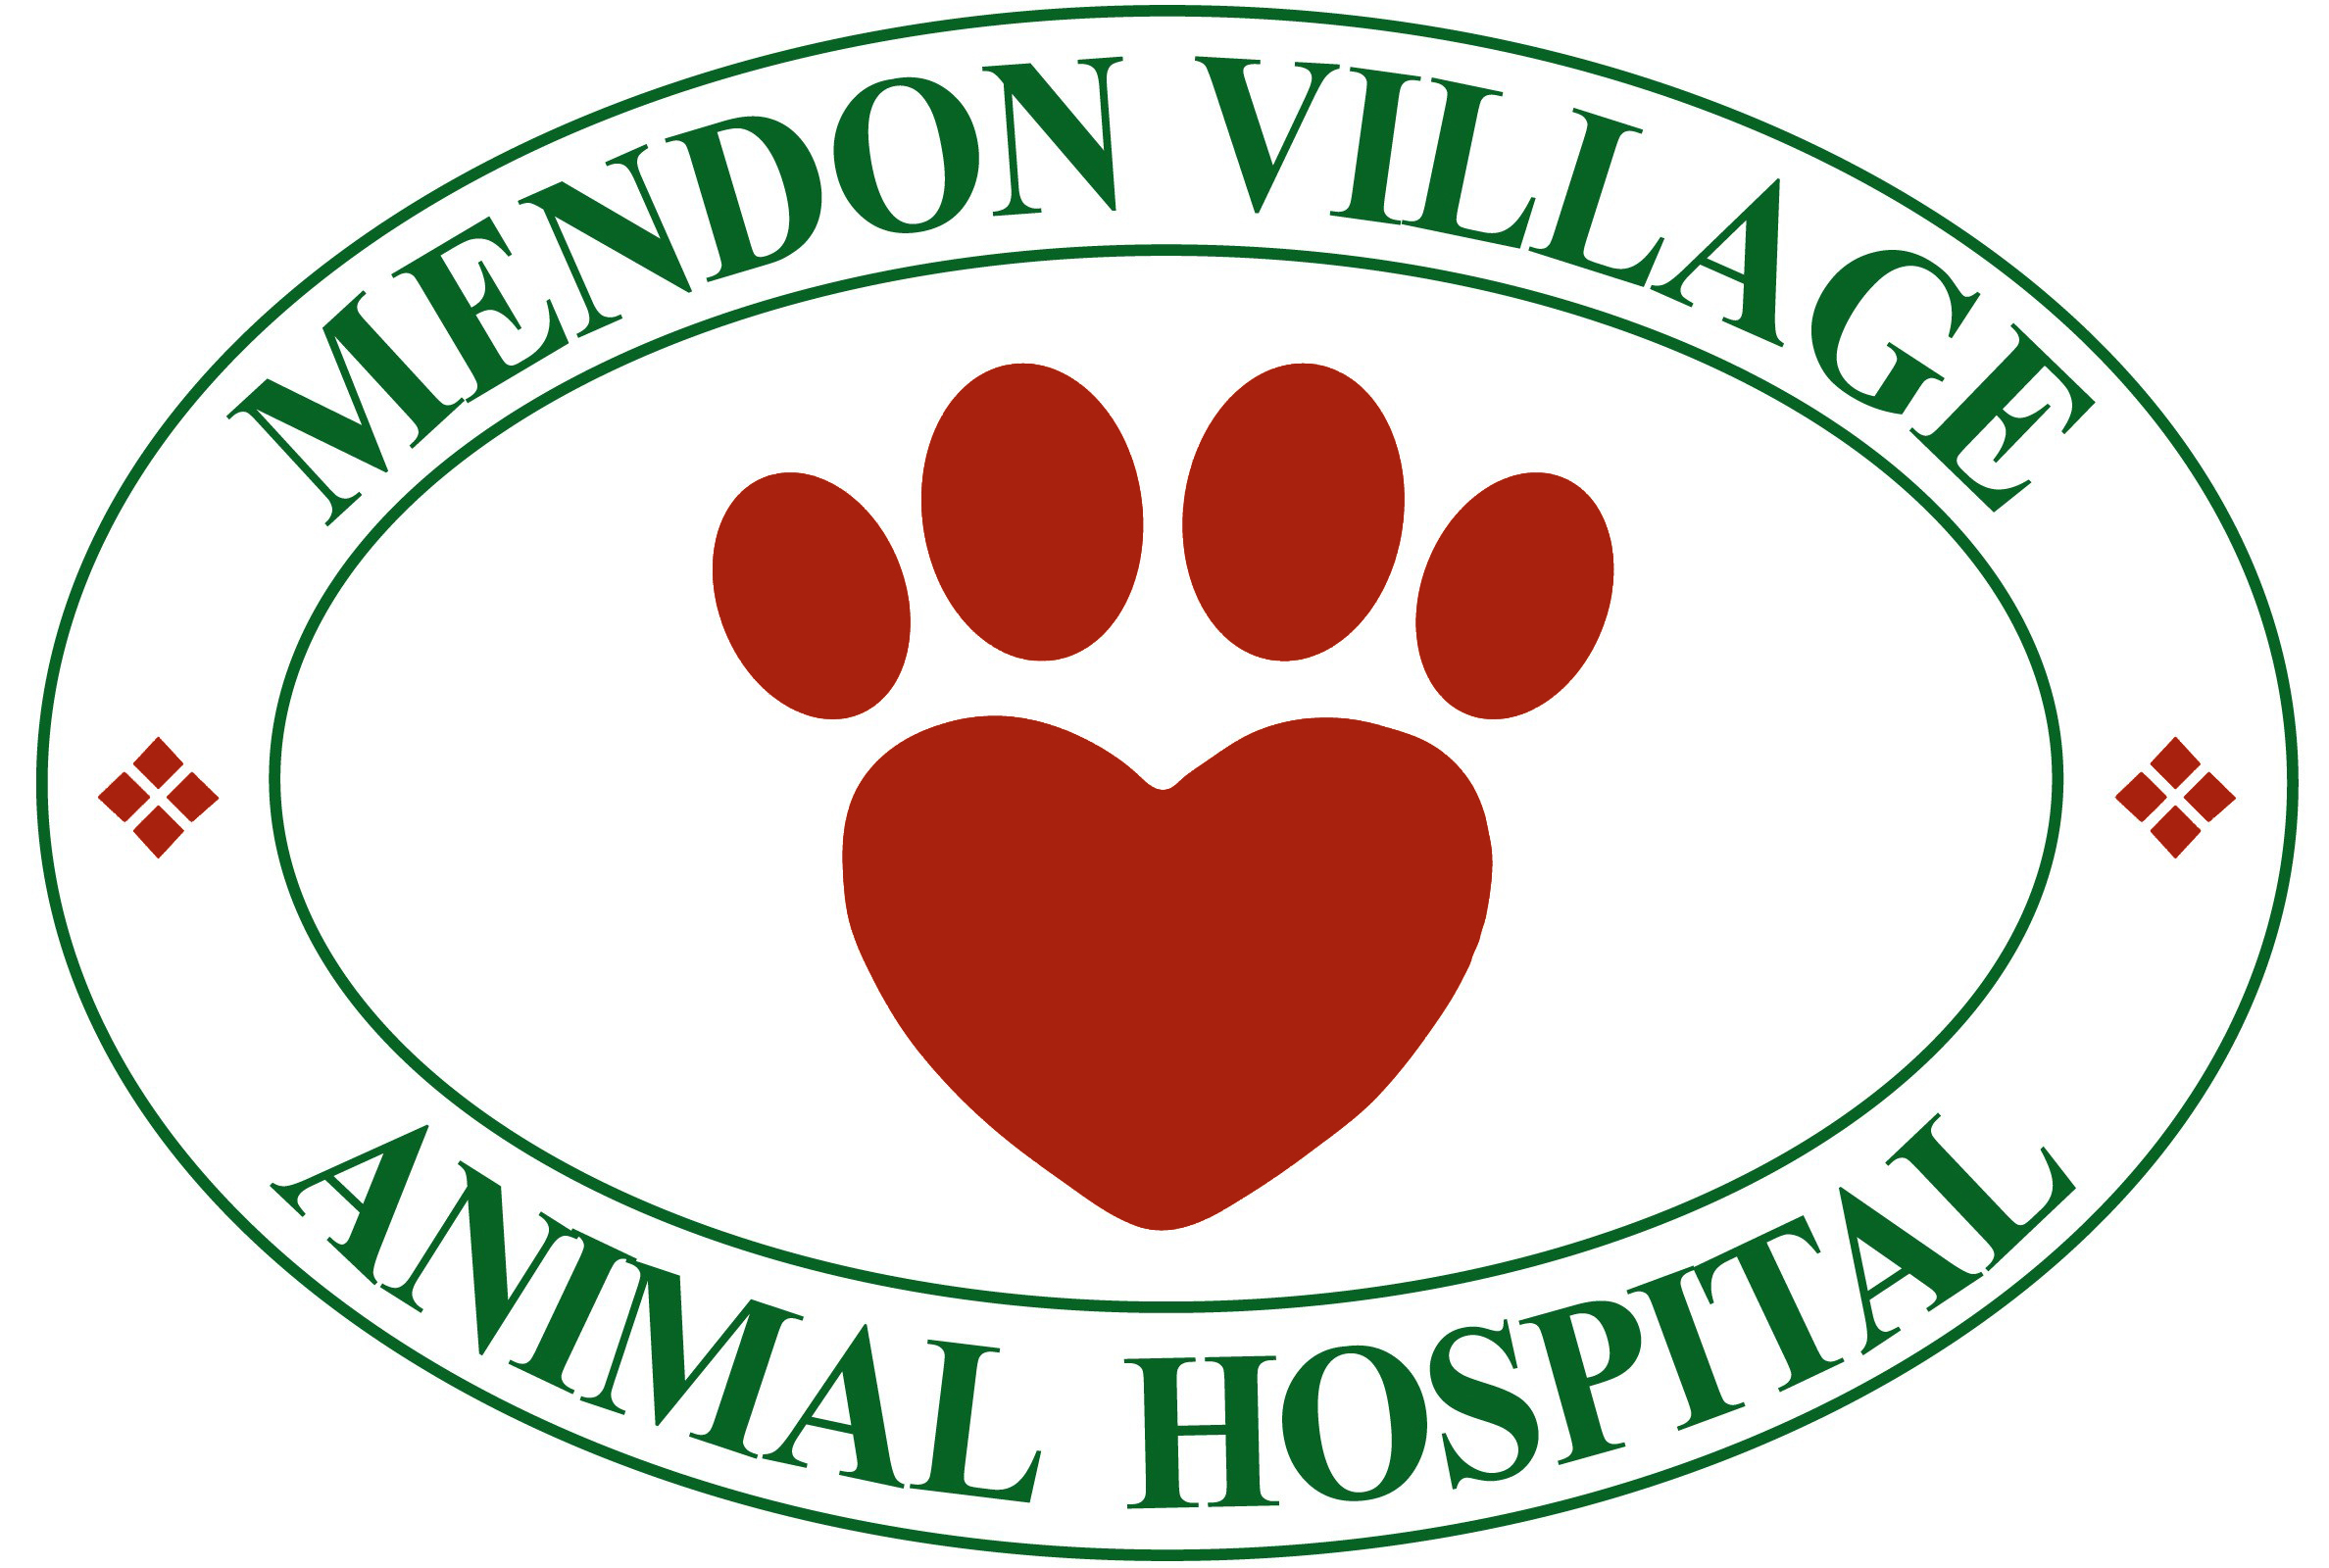 Mendon Village Animal Hospital